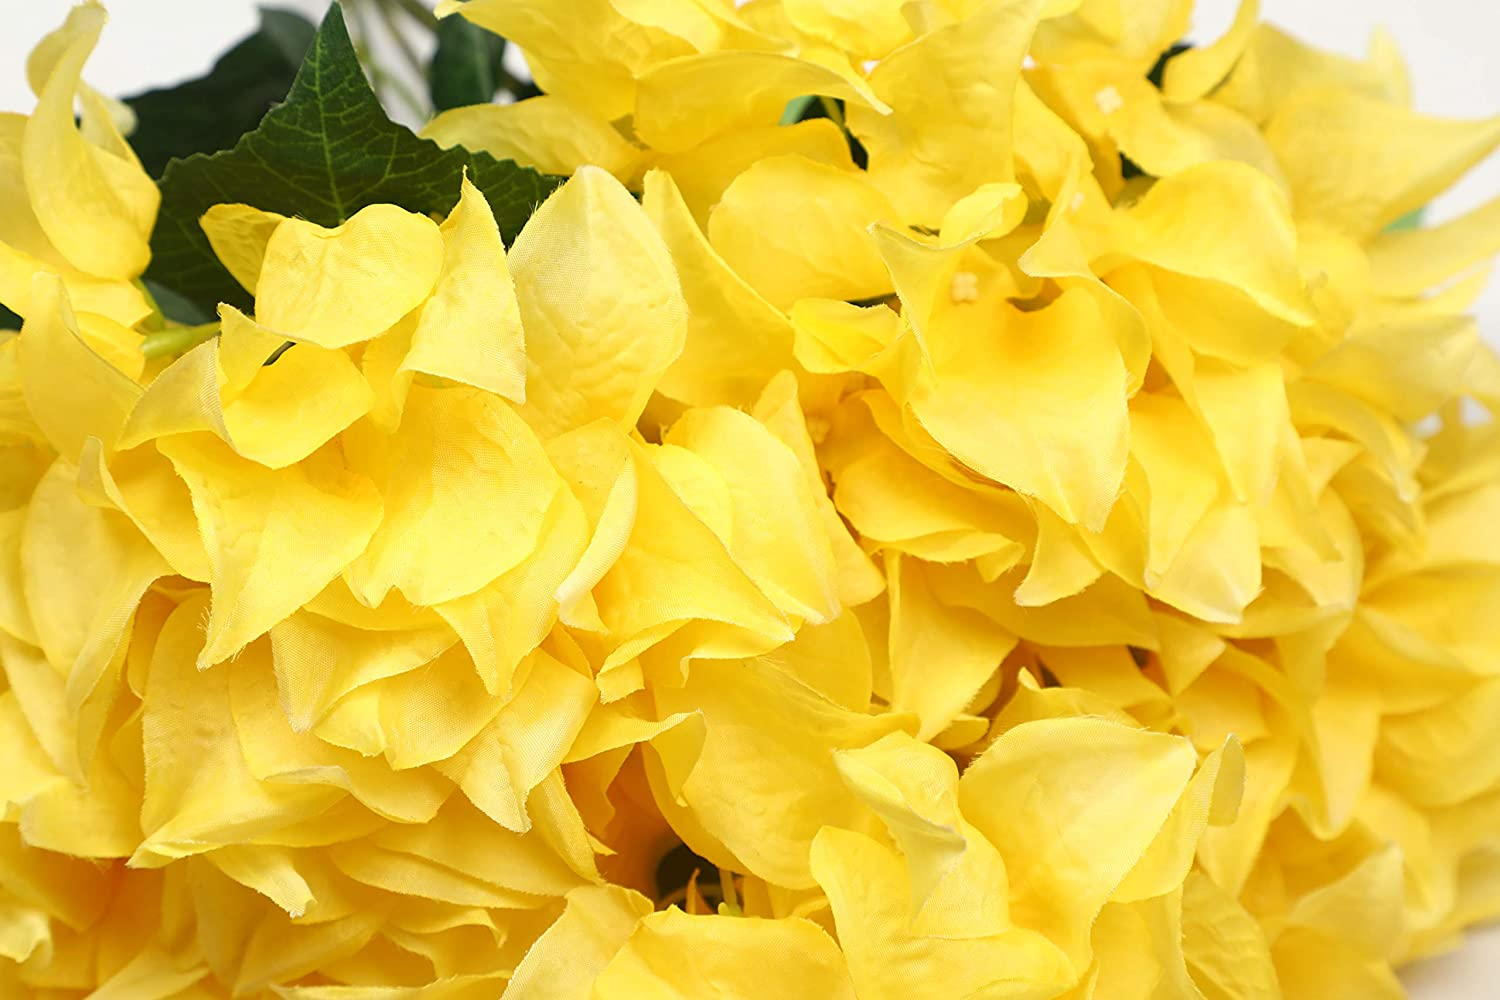 Pollination Beautiful Yellow Bougainvillea Artificial Flower Bunch for Home Decoration (Pack of 1, 19 INCH)